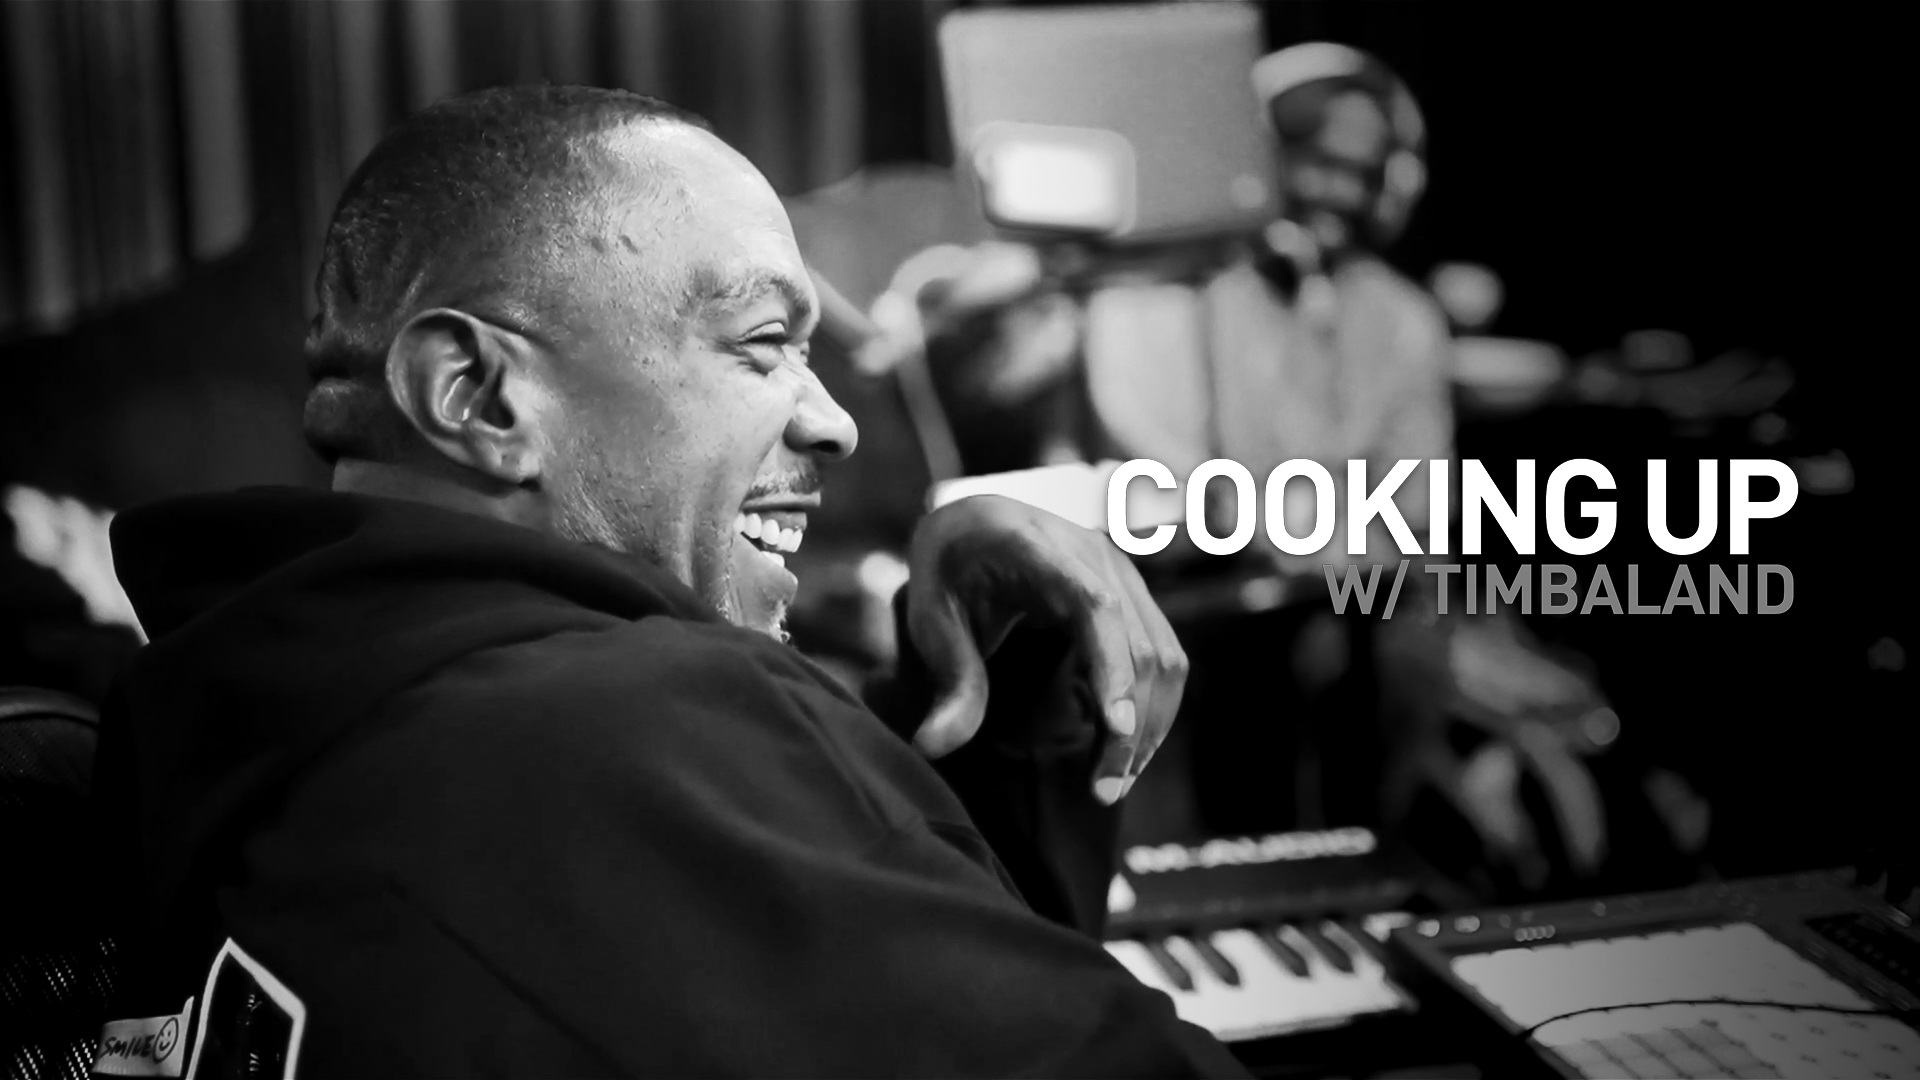 Cooking Up with Timbaland